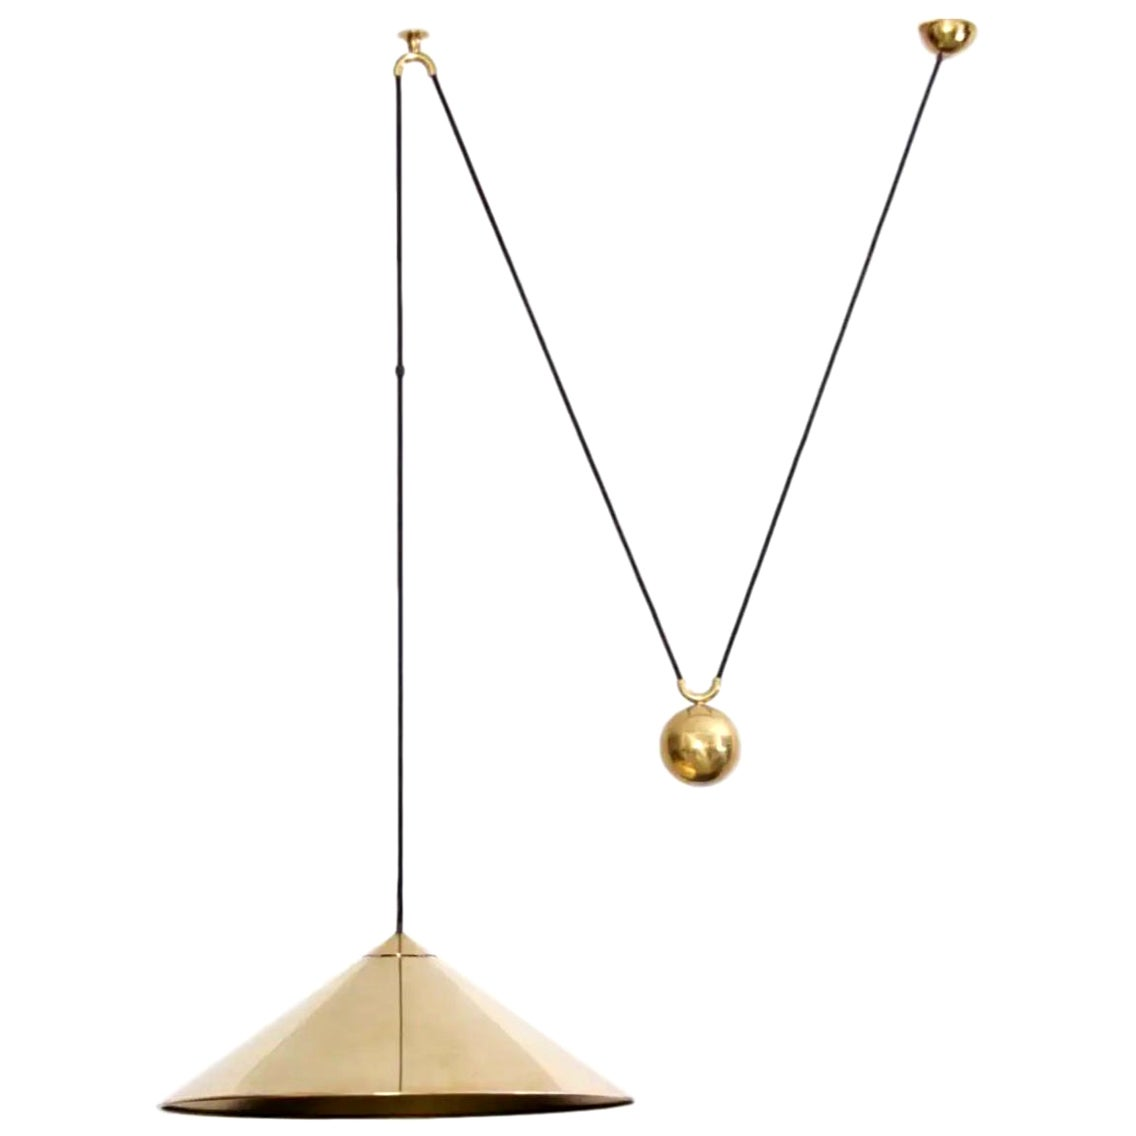 Florian Schulz Side Counter-Balance Pendant in Brass